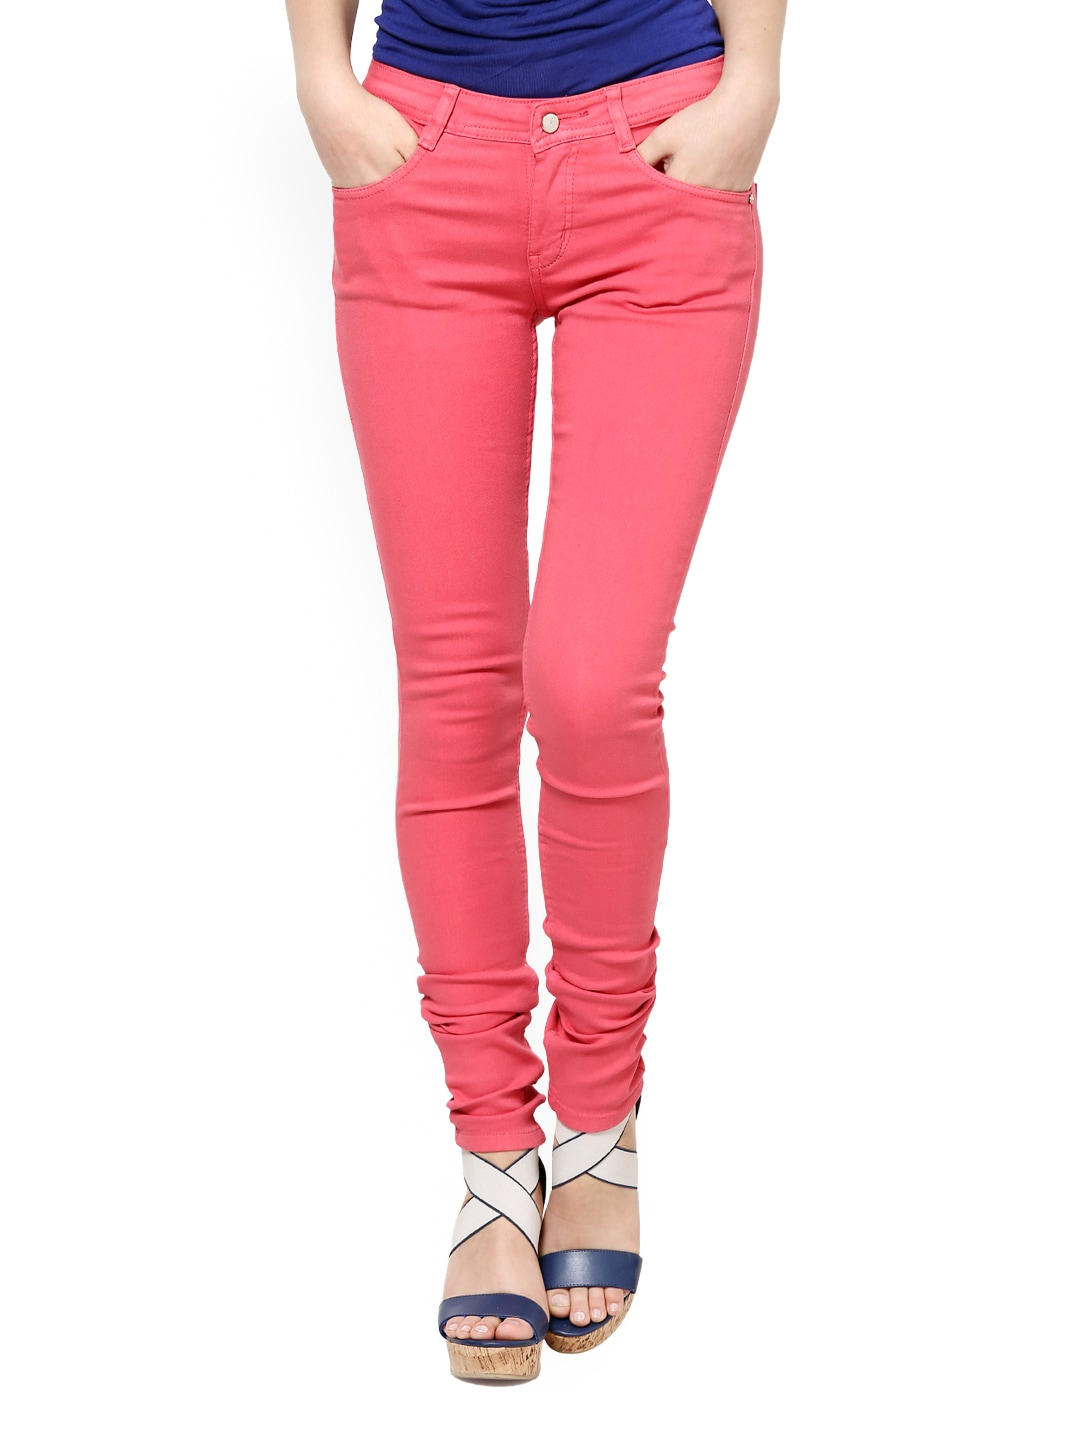 L ELEGANTAE Women Coral Red Jeans